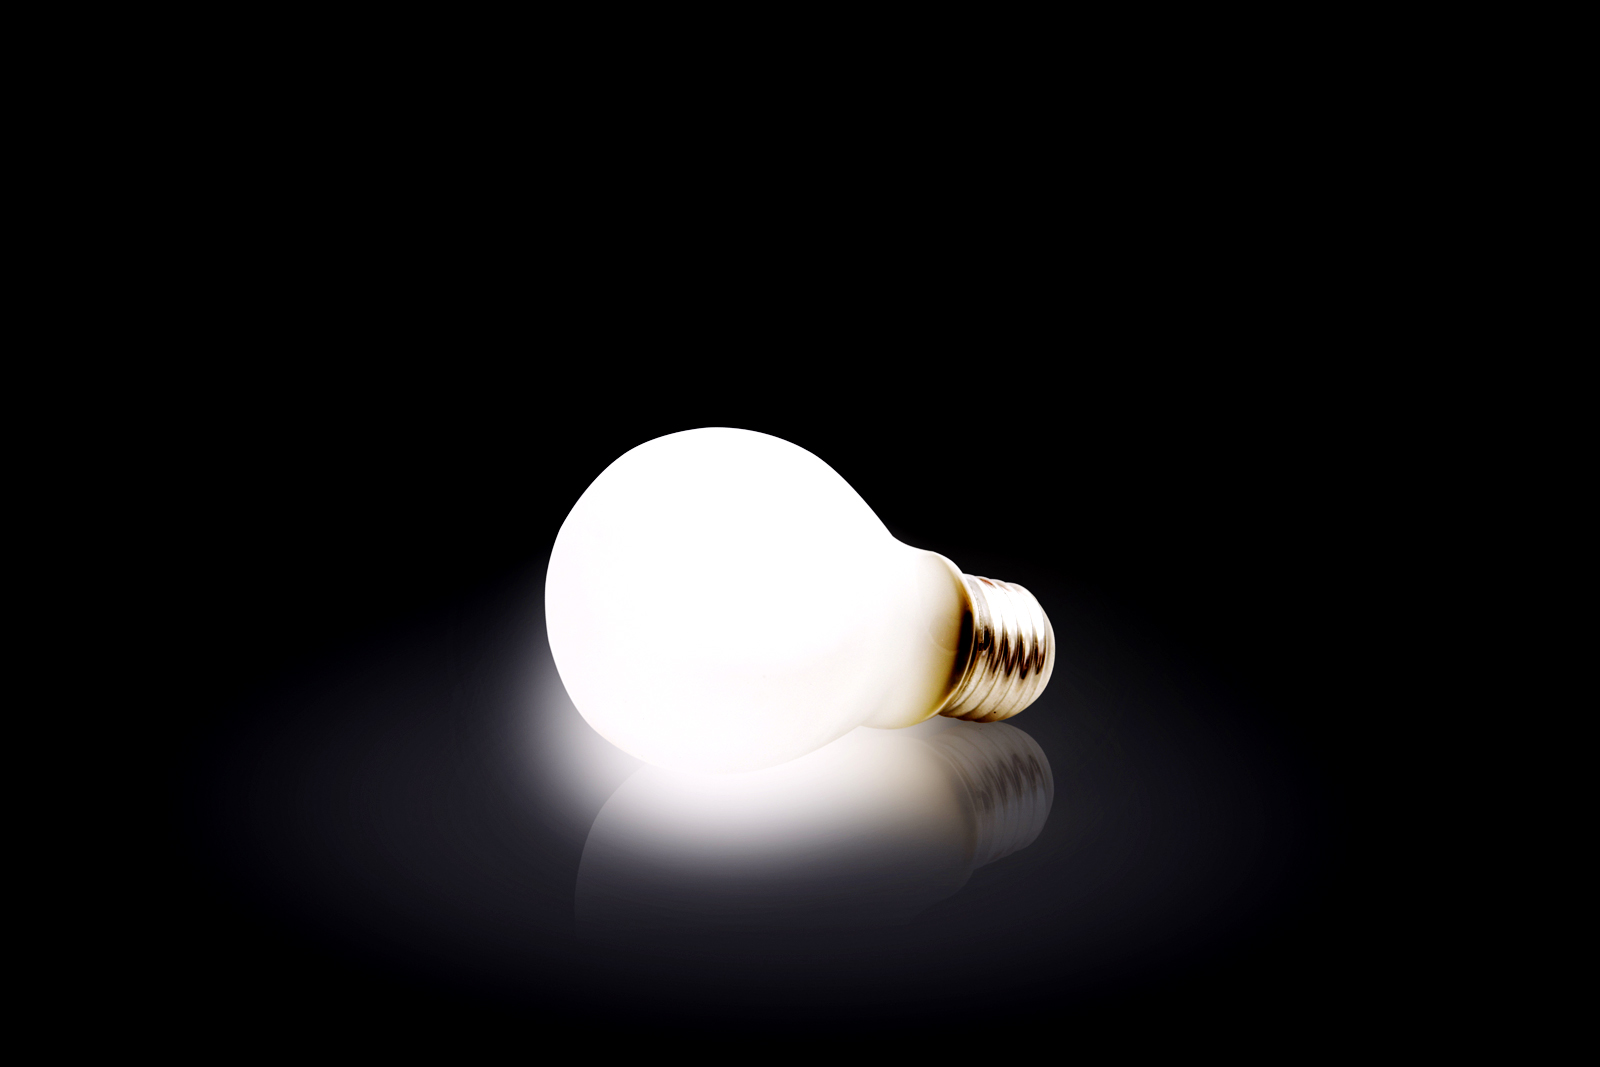 Light bulb hd wallpapers stock photos hd wallpapers backgrounds photos pictures image pc A light bulb